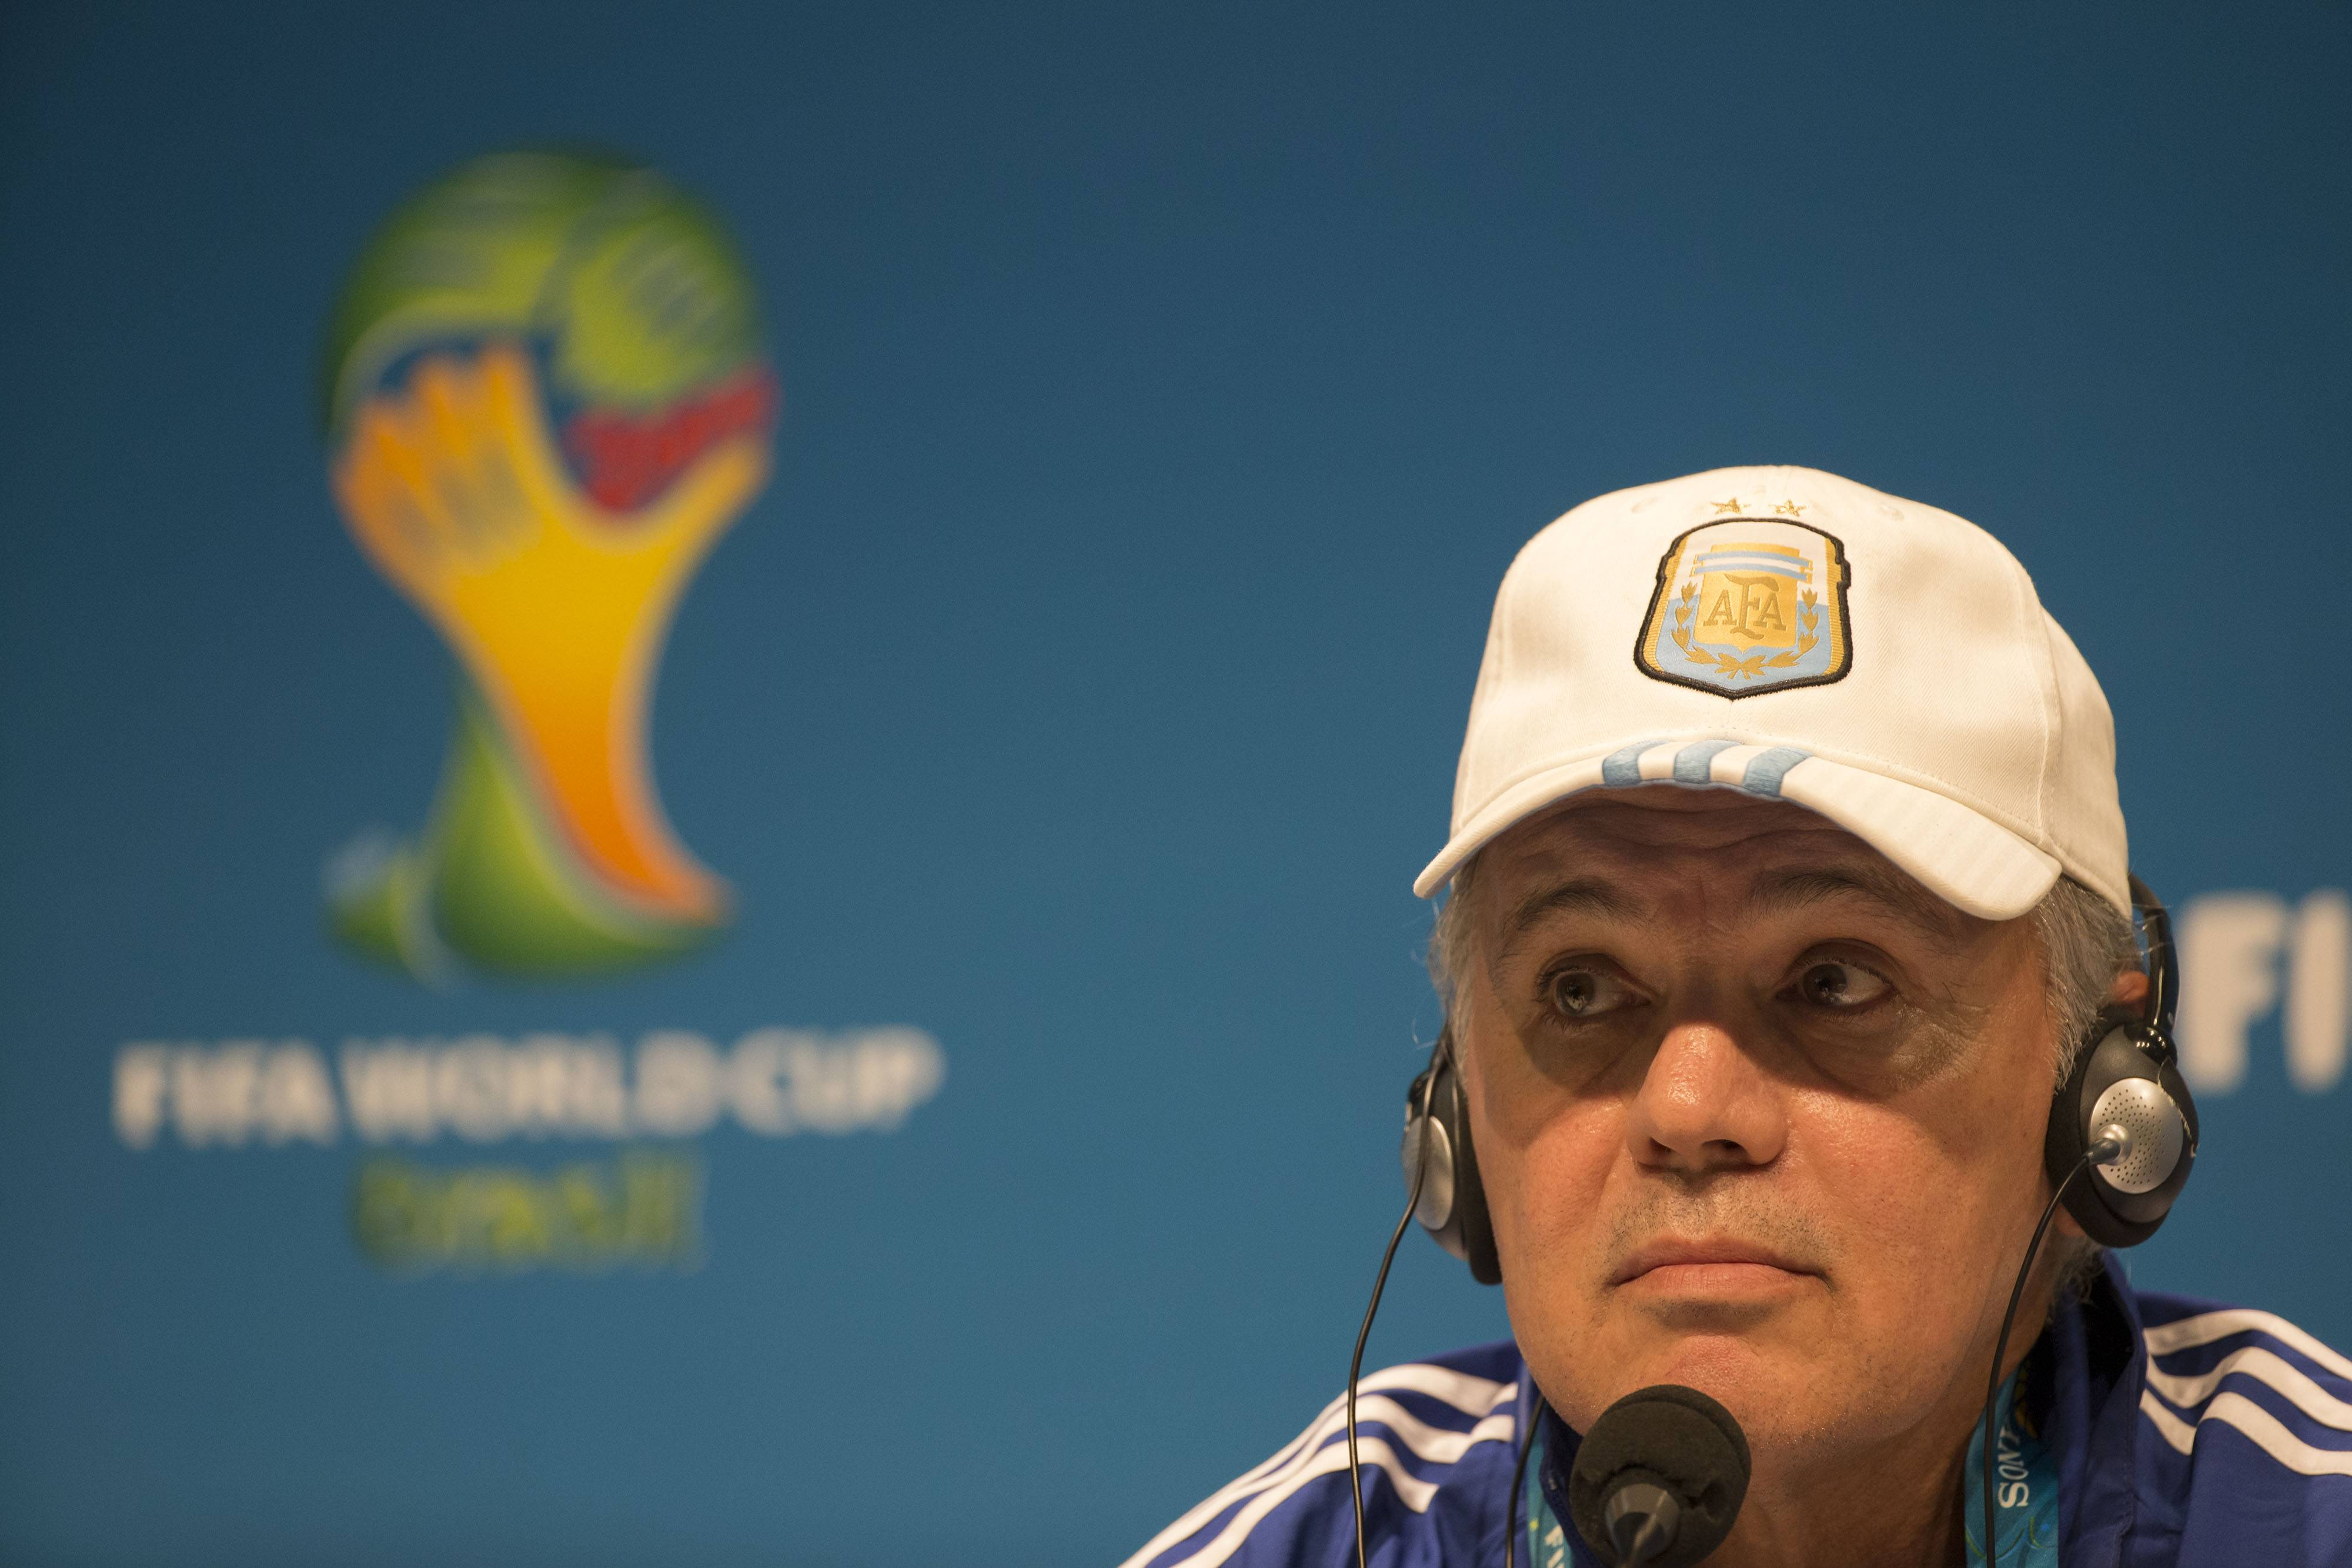 Argentina's head coach, Alejandro Sabella, listens to questions during a news conference Saturday in Rio de Janeiro, Brazil. Argentina and Germany will play for the World Cup title on Sunday.